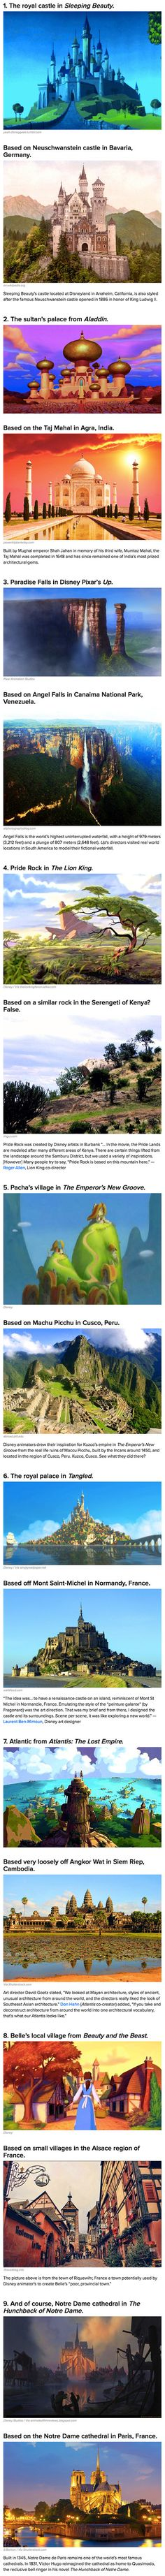 Here are some real-life locations that inspired places in famous Disney films!